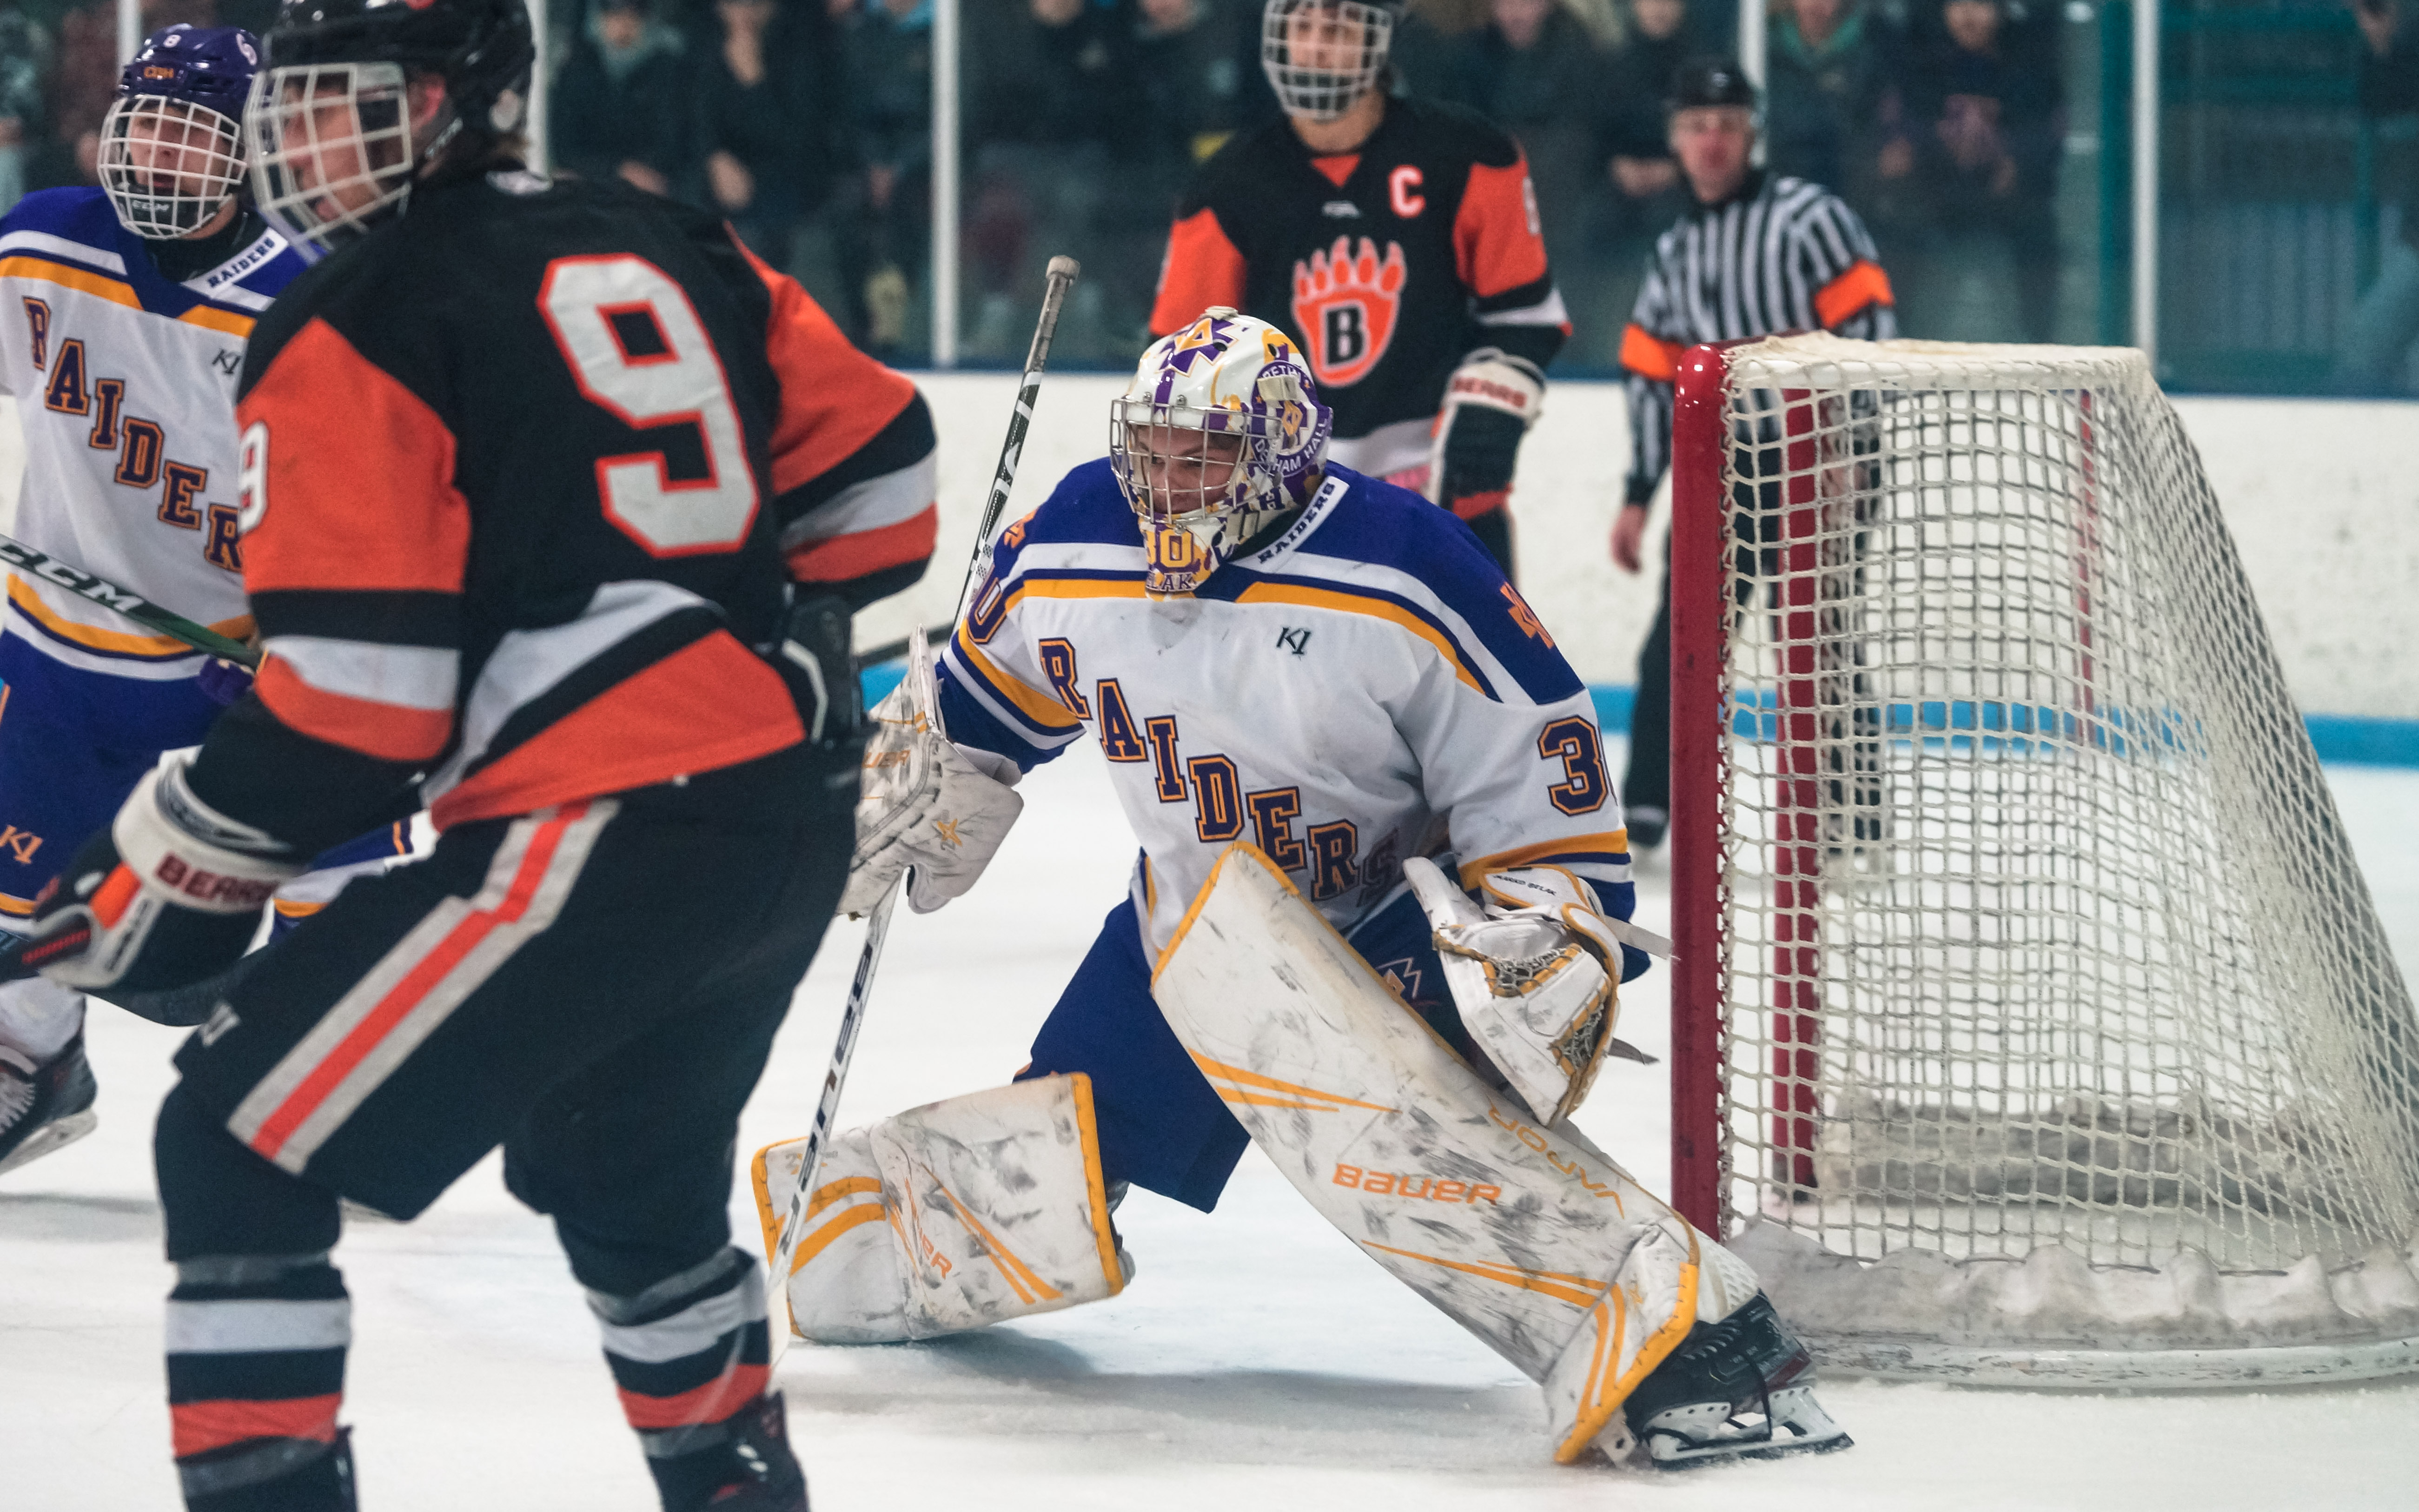 Raiders goalie Marko Belak faced a buzzing first-period attack from White Bear Lake and settled in, allowing just one goal in his team's Suburban East Conference victory. Photo by Korey McDermott, SportsEngine